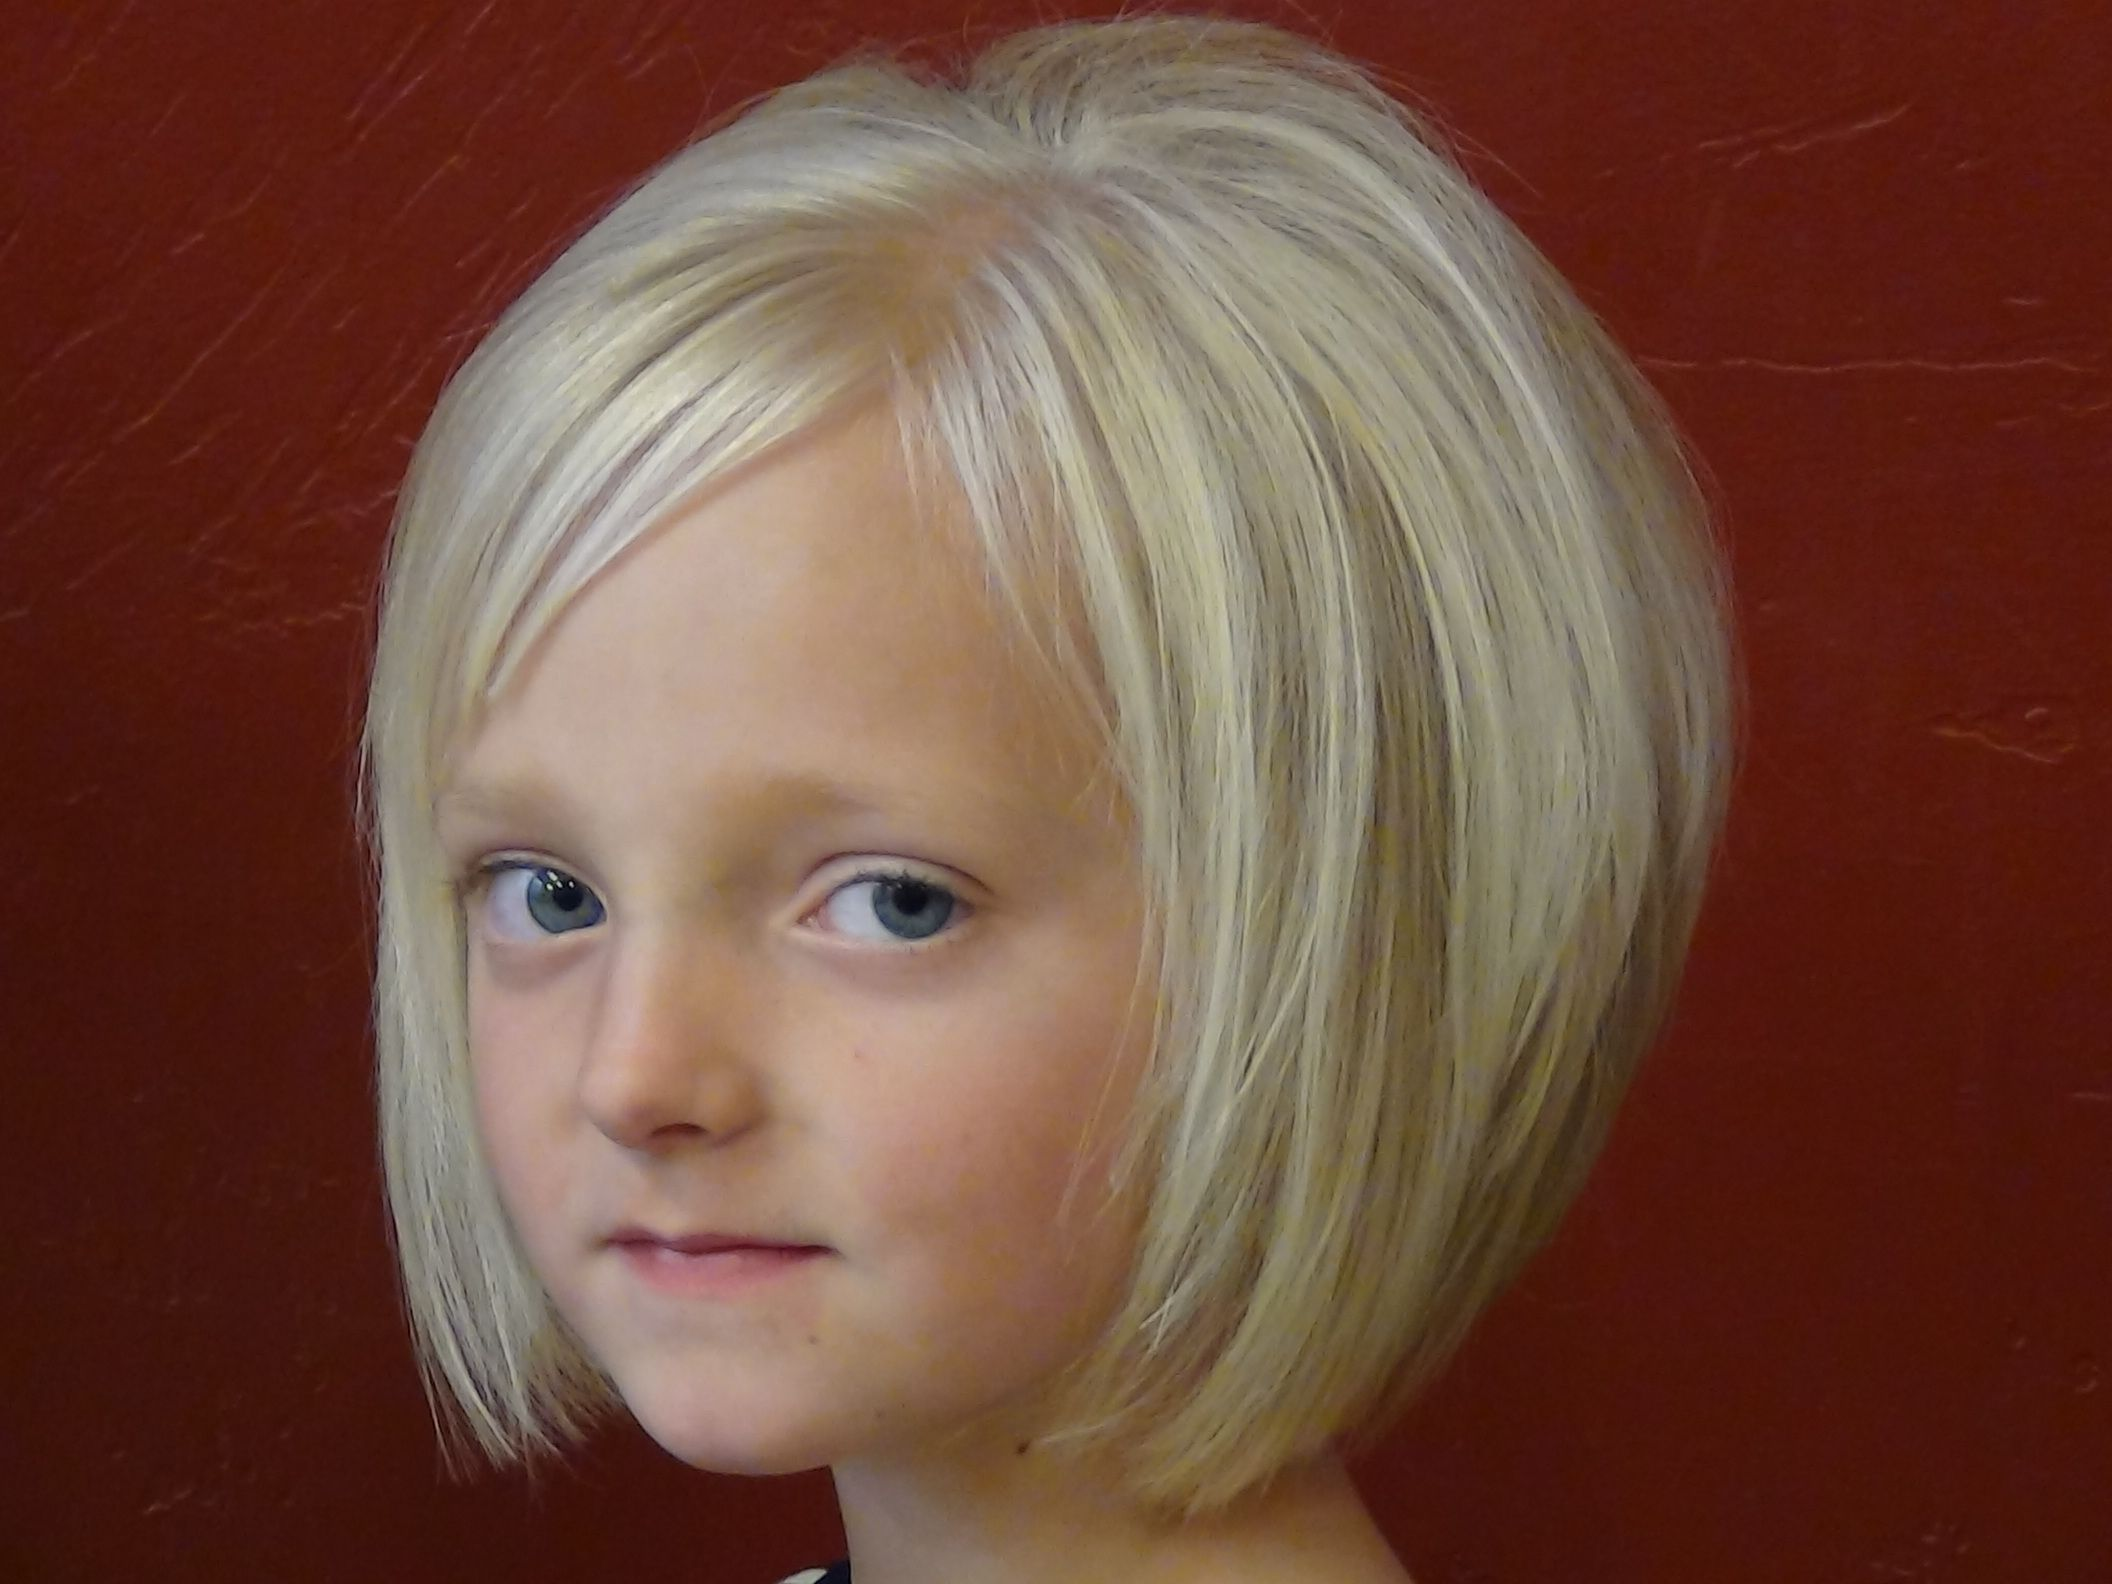 Girlus bob hair cut hair in pinterest hair girl haircuts